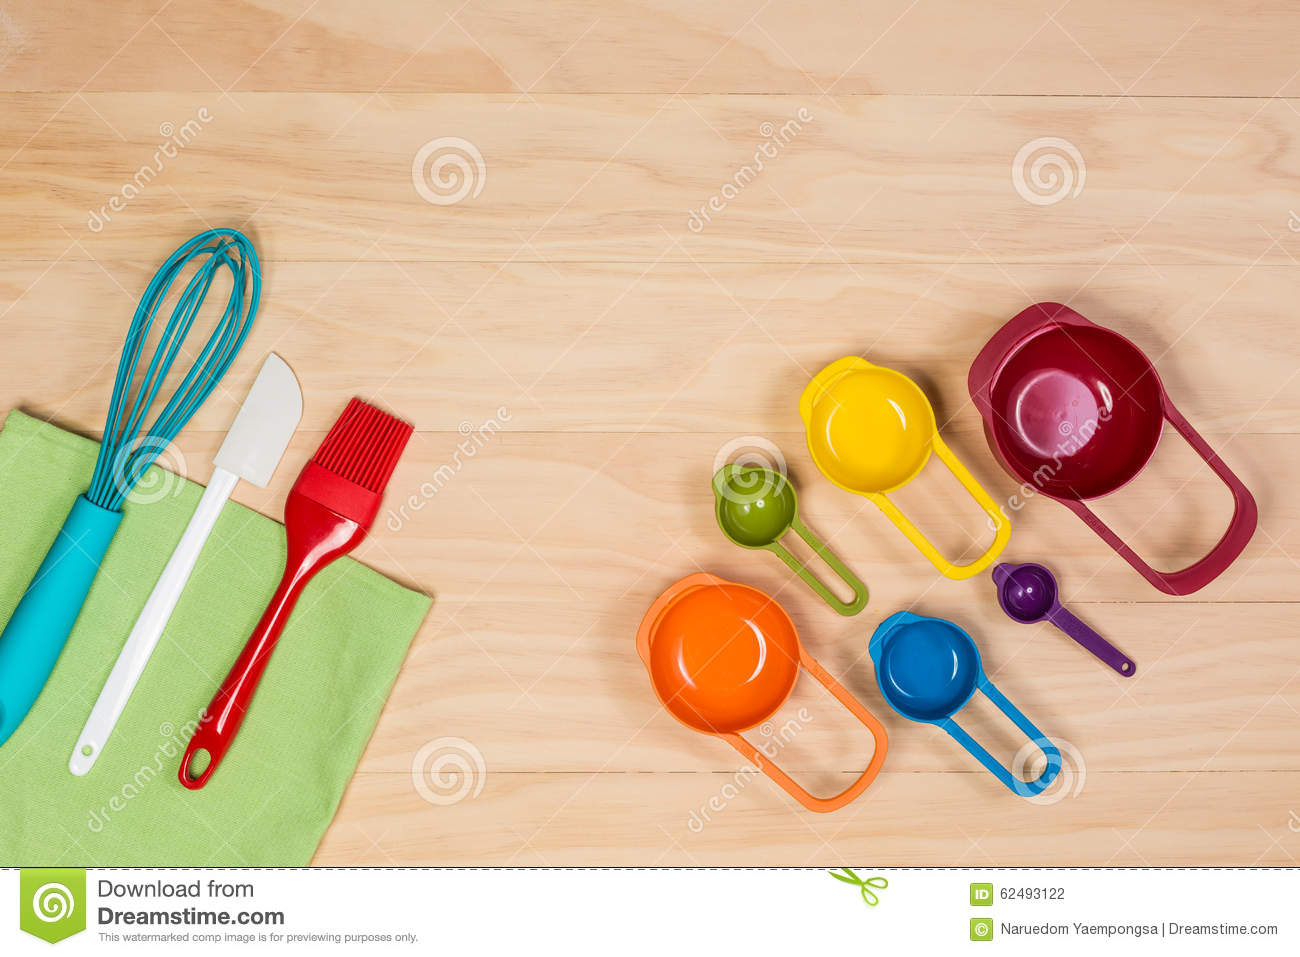 Colorful kitchen utensils stock photo. Image of bakery ...